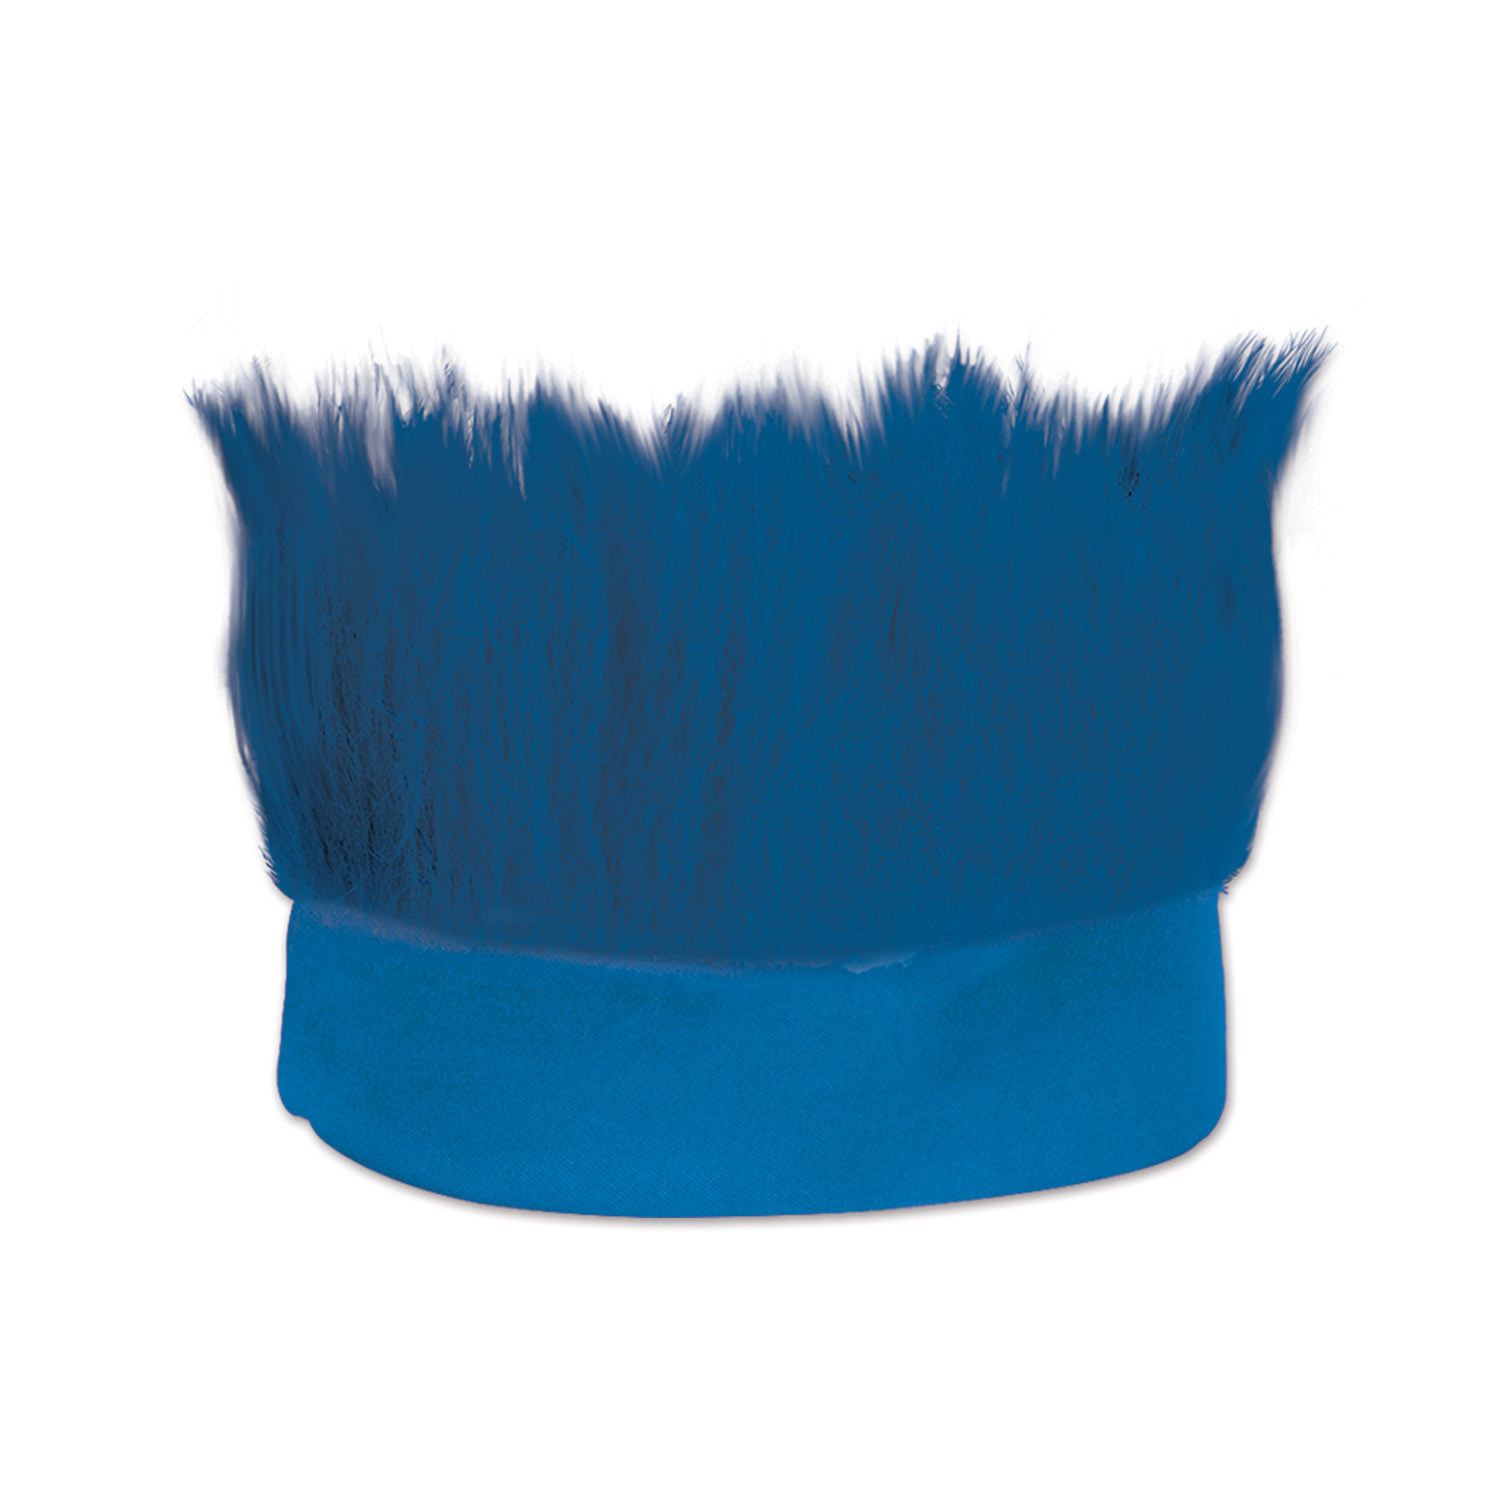 Hairy Headband (Pack of 12) hairy headband, headband, sports, game day, blue